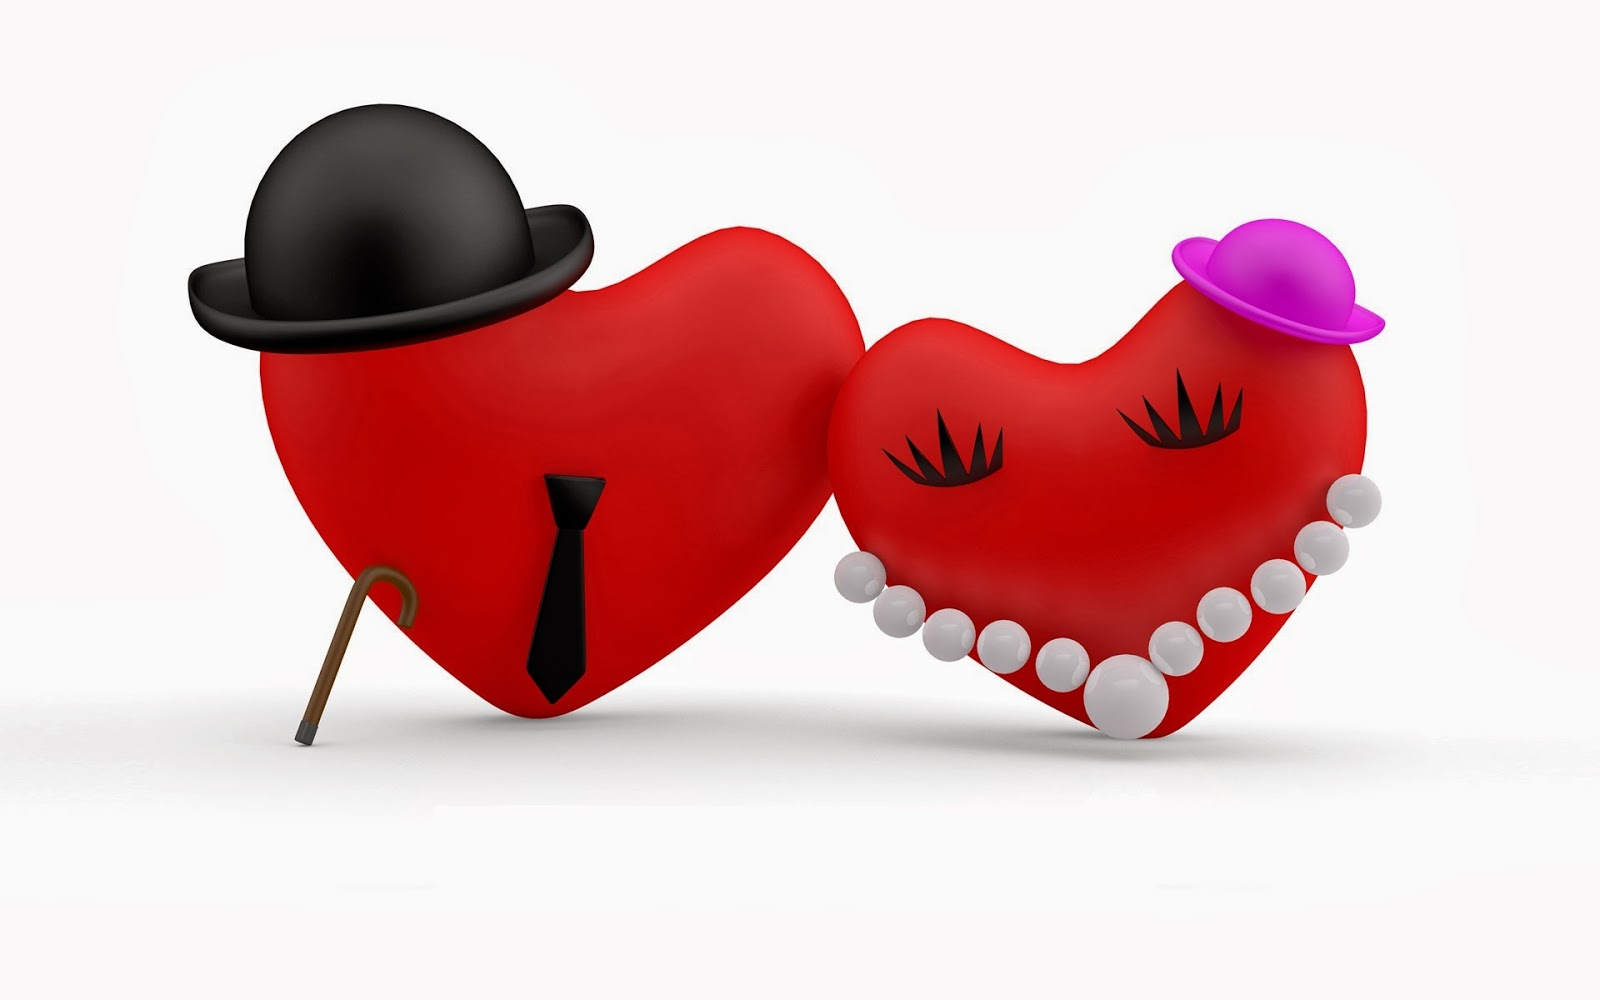 Love Heart couple Hd Wallpaper : Missing Beats of Life: Love Heart HD Wallpapers and Images